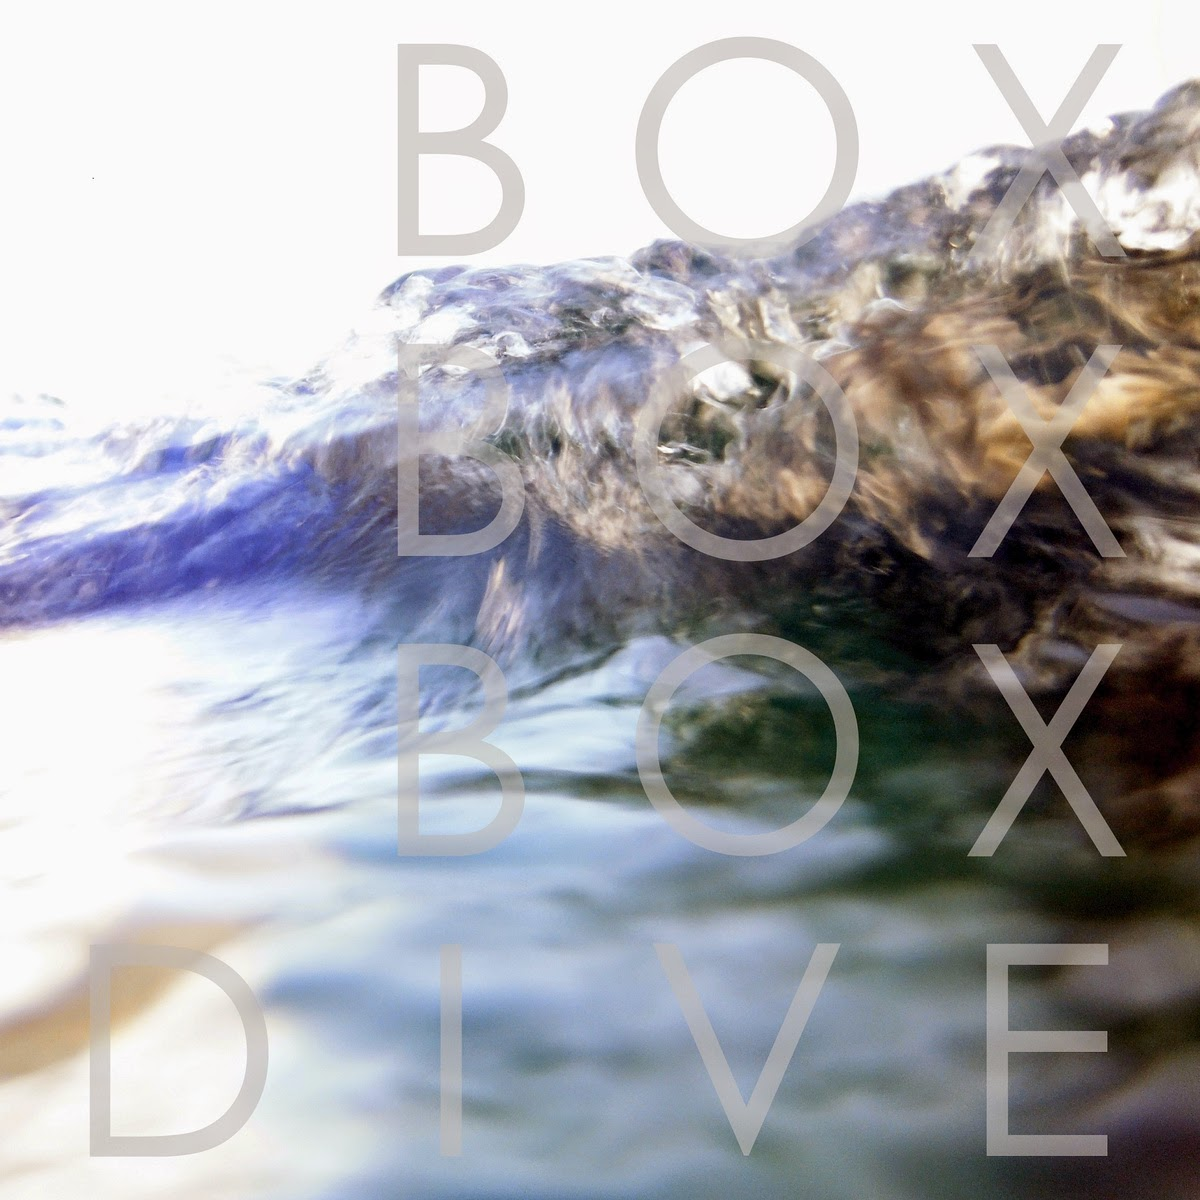 http://www.d4am.net/2014/05/boxboxbox-dive-free-download.html